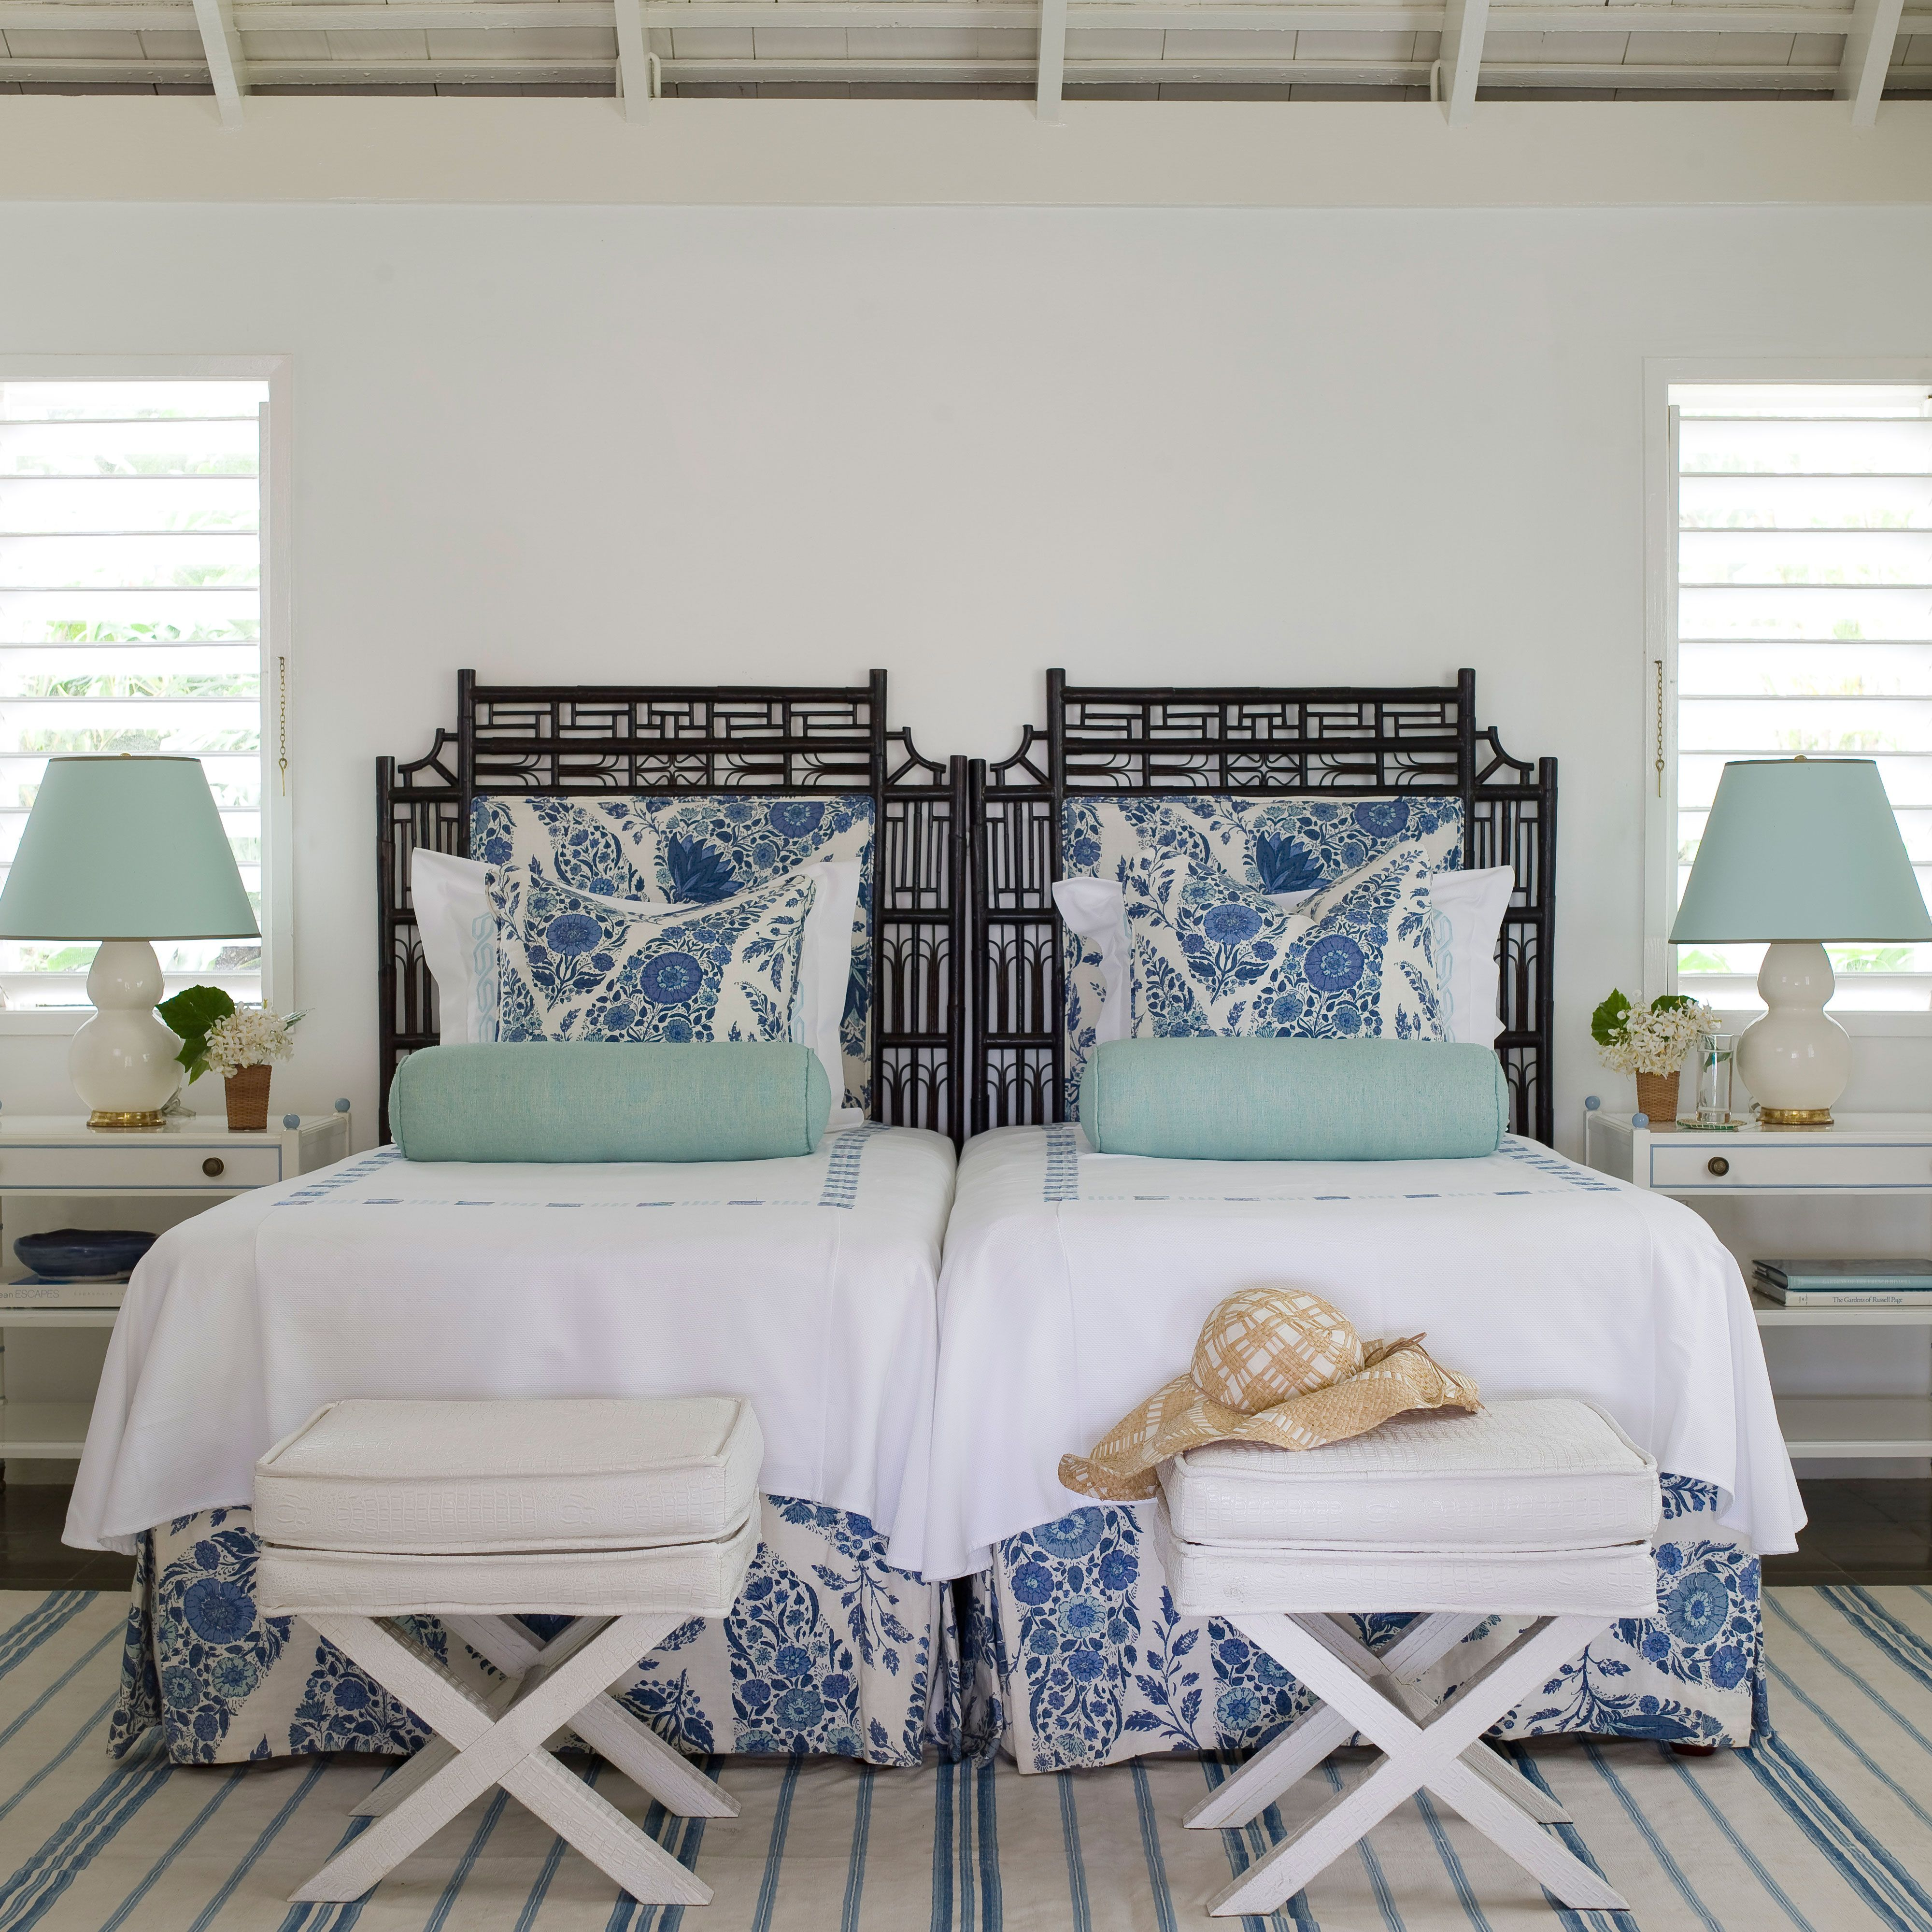 "<p>When the color scheme is this pared-down, it gives you license to really play with prints. The secret is so simple: ""Vary the scale and location of the prints,"" advises Braff. For example, the oversize floral pillows on the bed contrast so well with the skinny-striped rug on the floor.</p>"